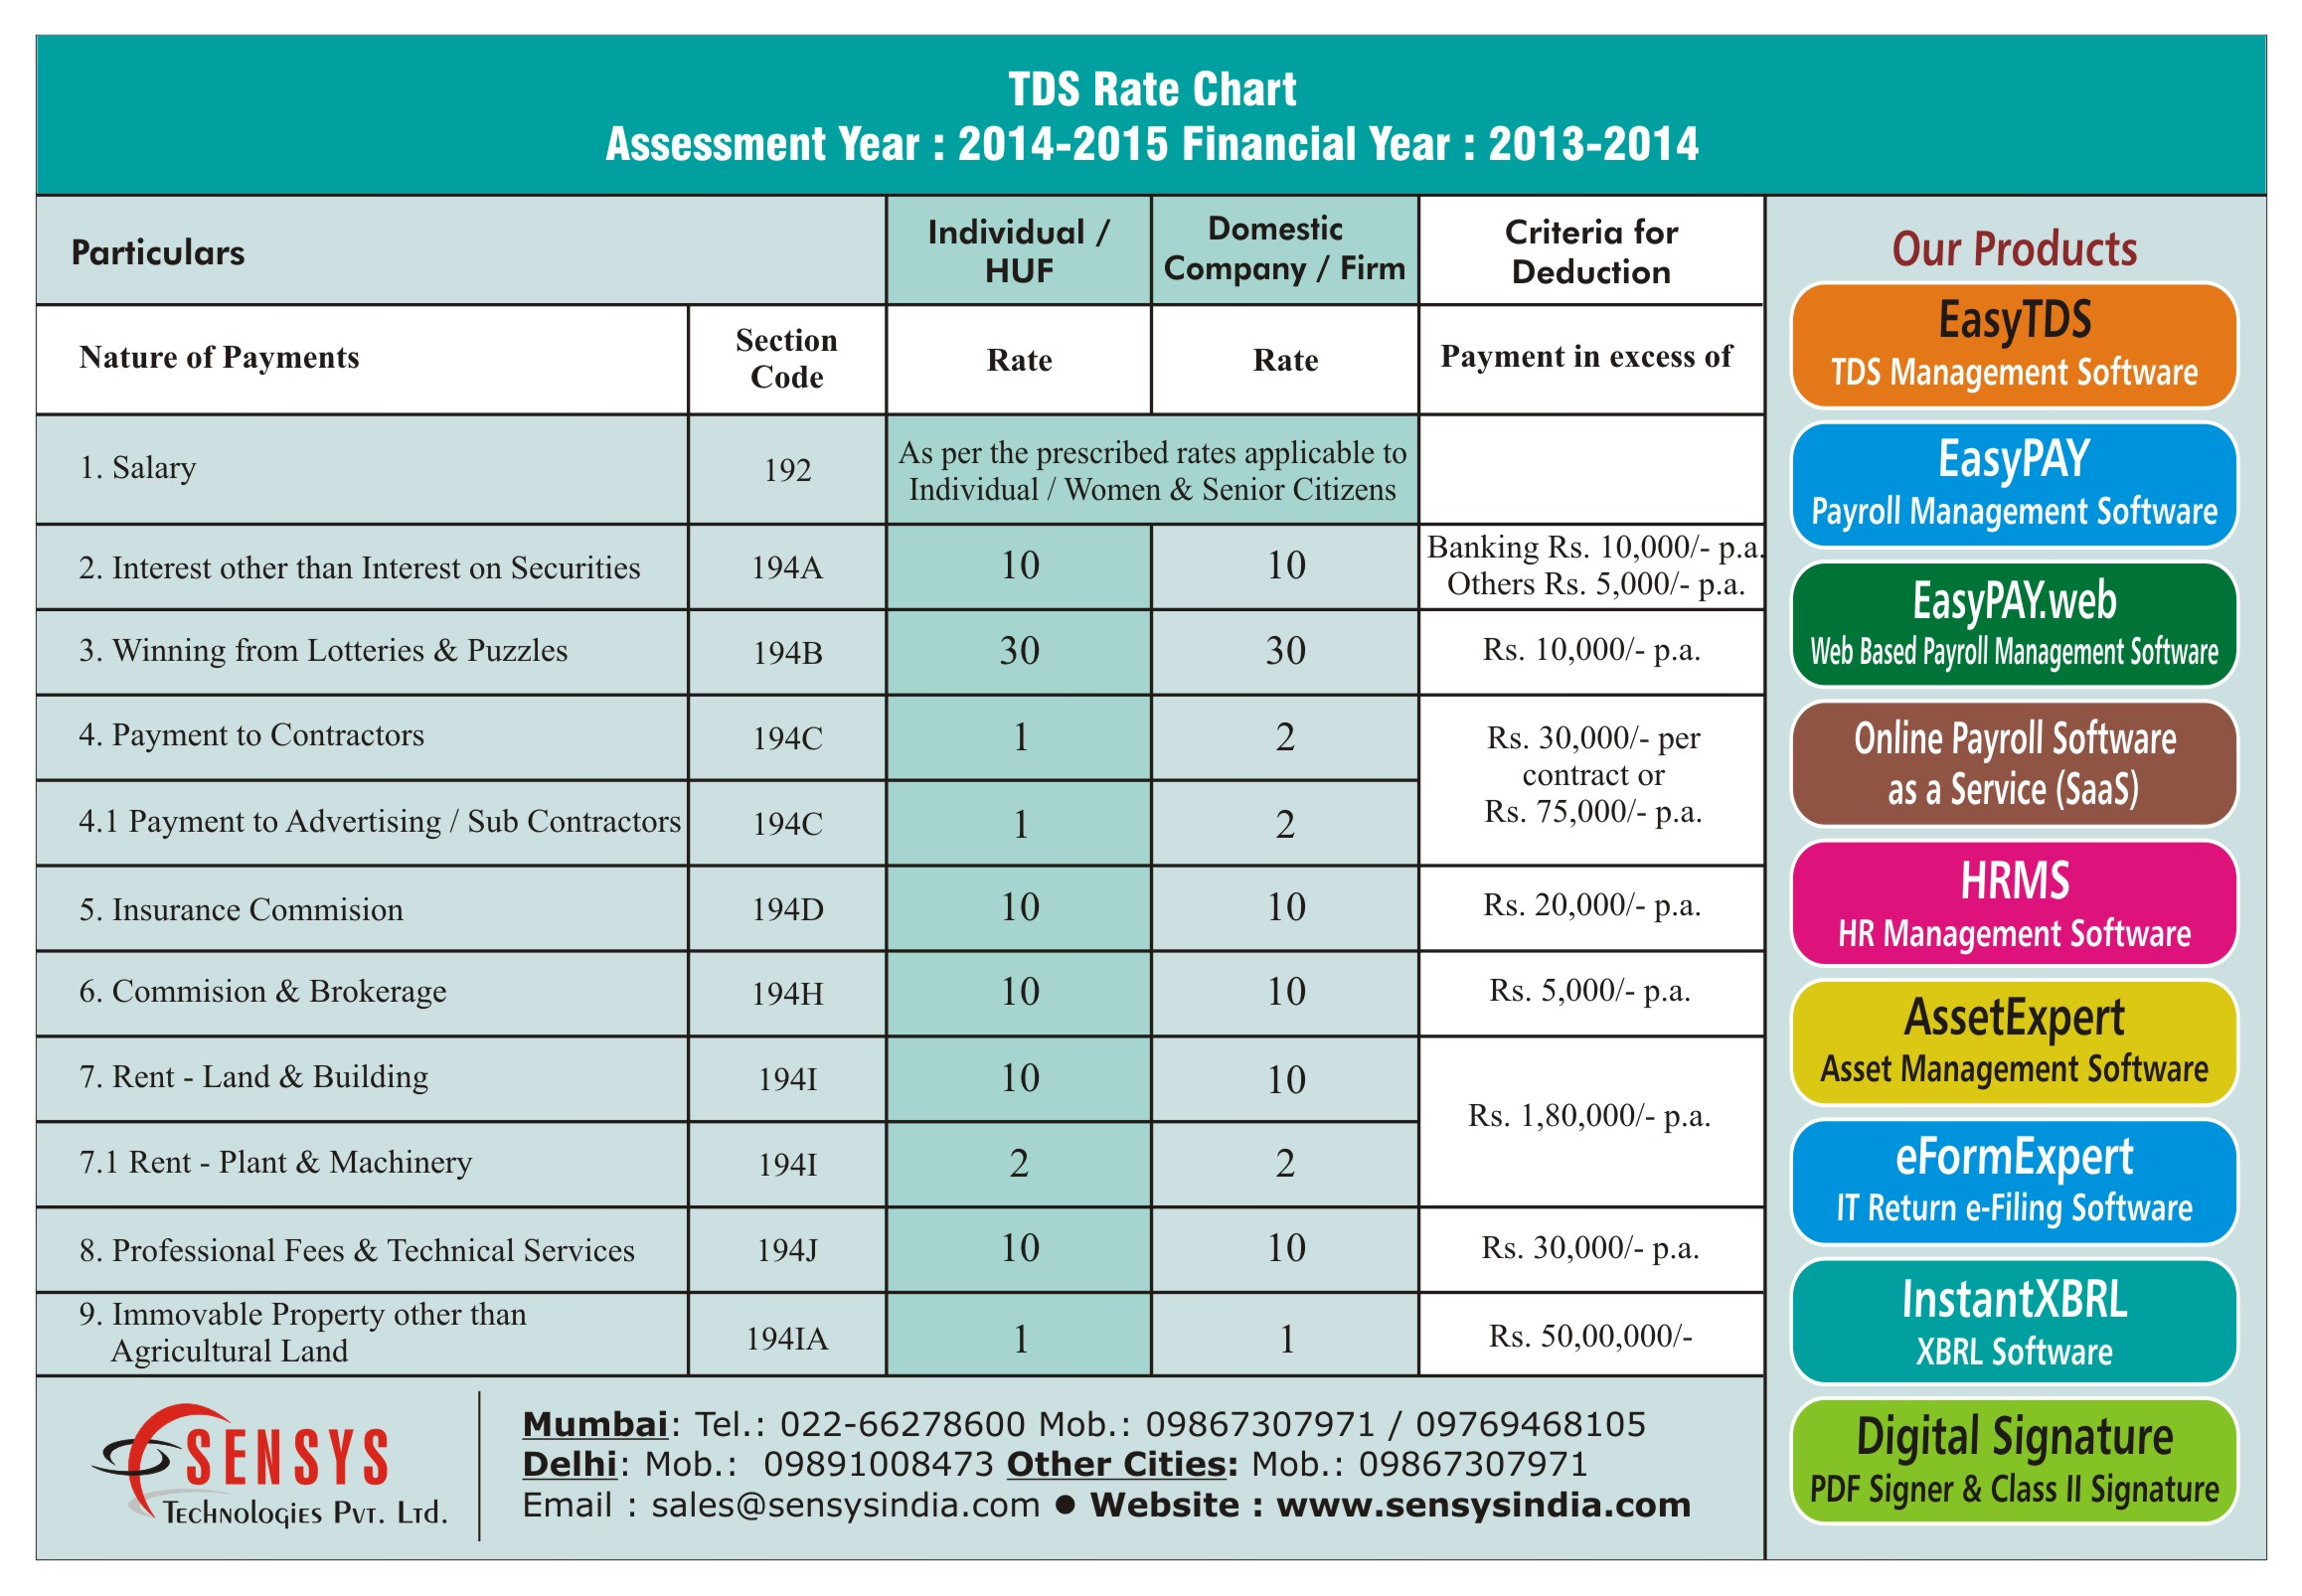 service tax rate chart for fy 2015 16 under reverse charge: Tds rate chart assessment year 2014 2015 sensys blog